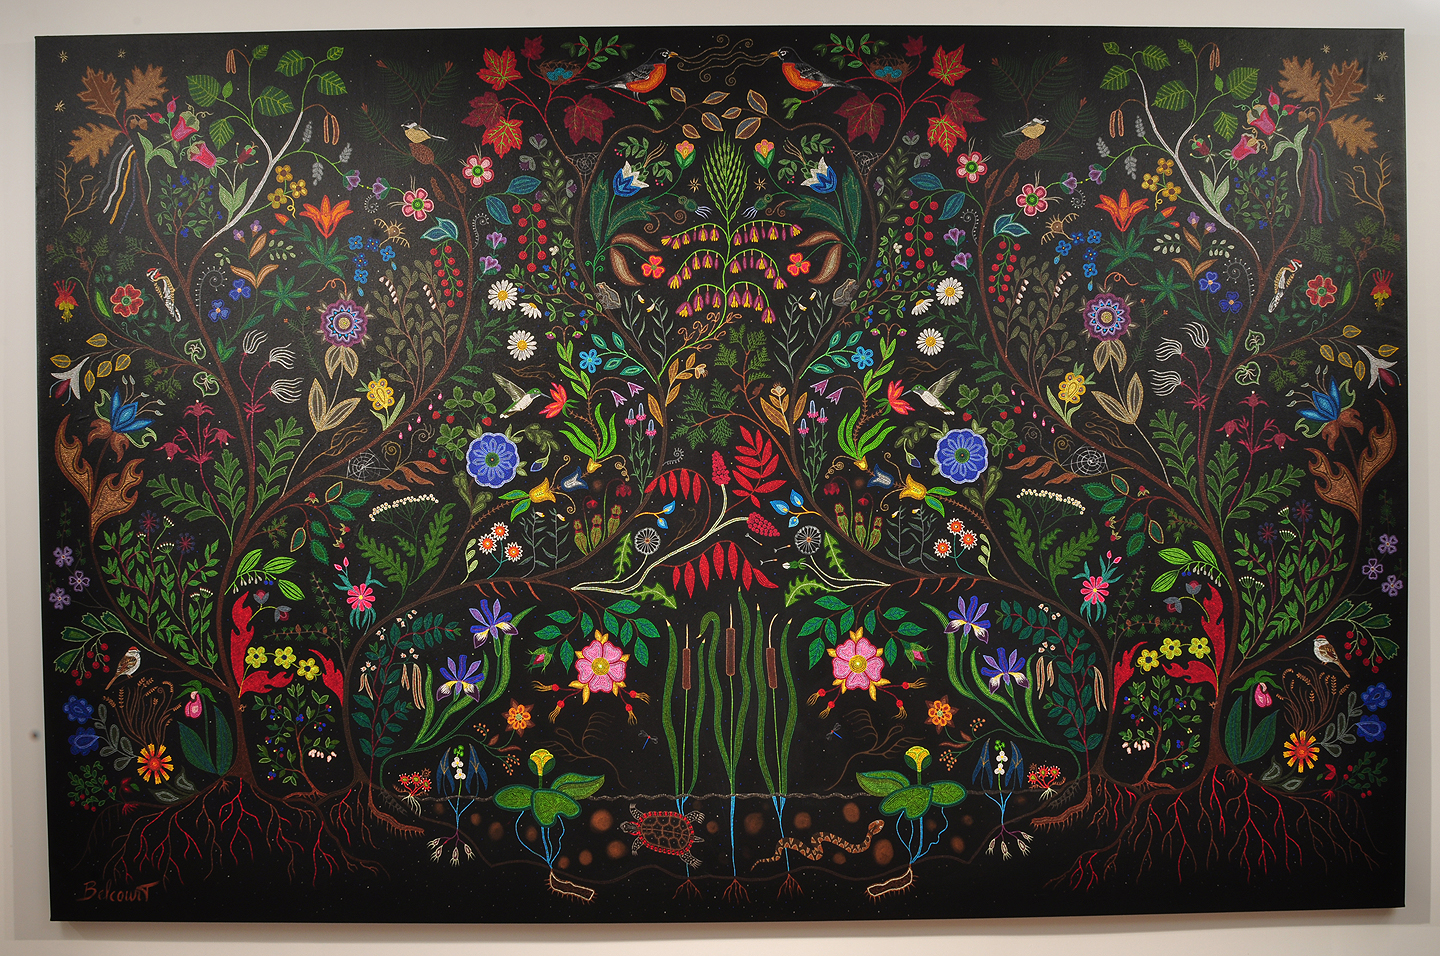 My Heart is Beautiful Acrylic on Canvas, 2009 approx. 9ft x 12ft Collection of the Gabriel Dumont Institute